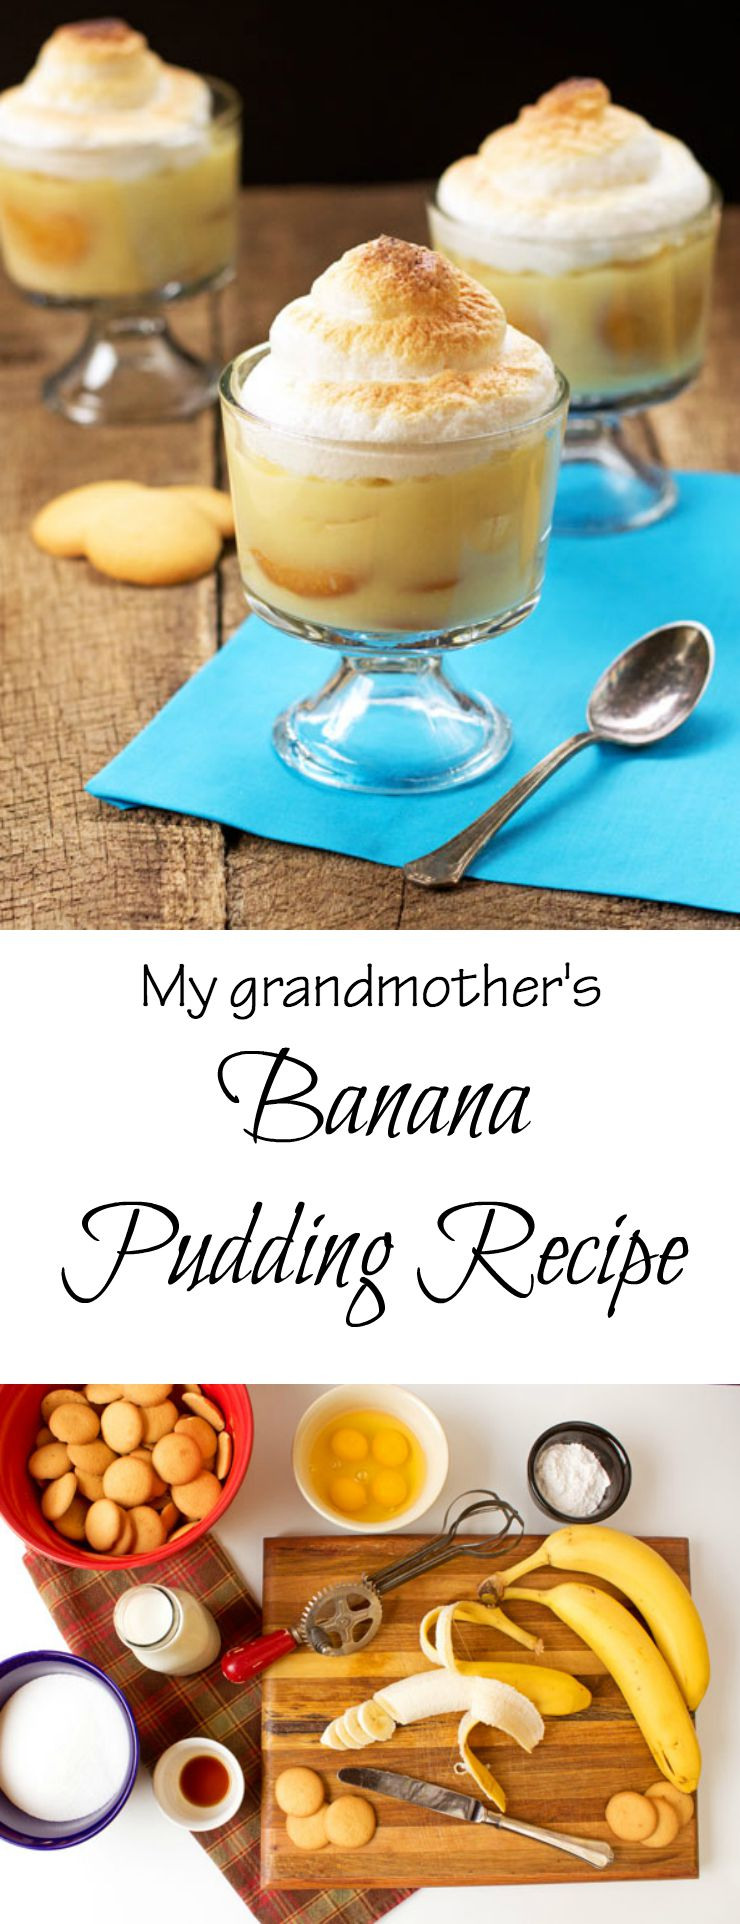 Banana Pudding Recipe | The Bearfoot Baker